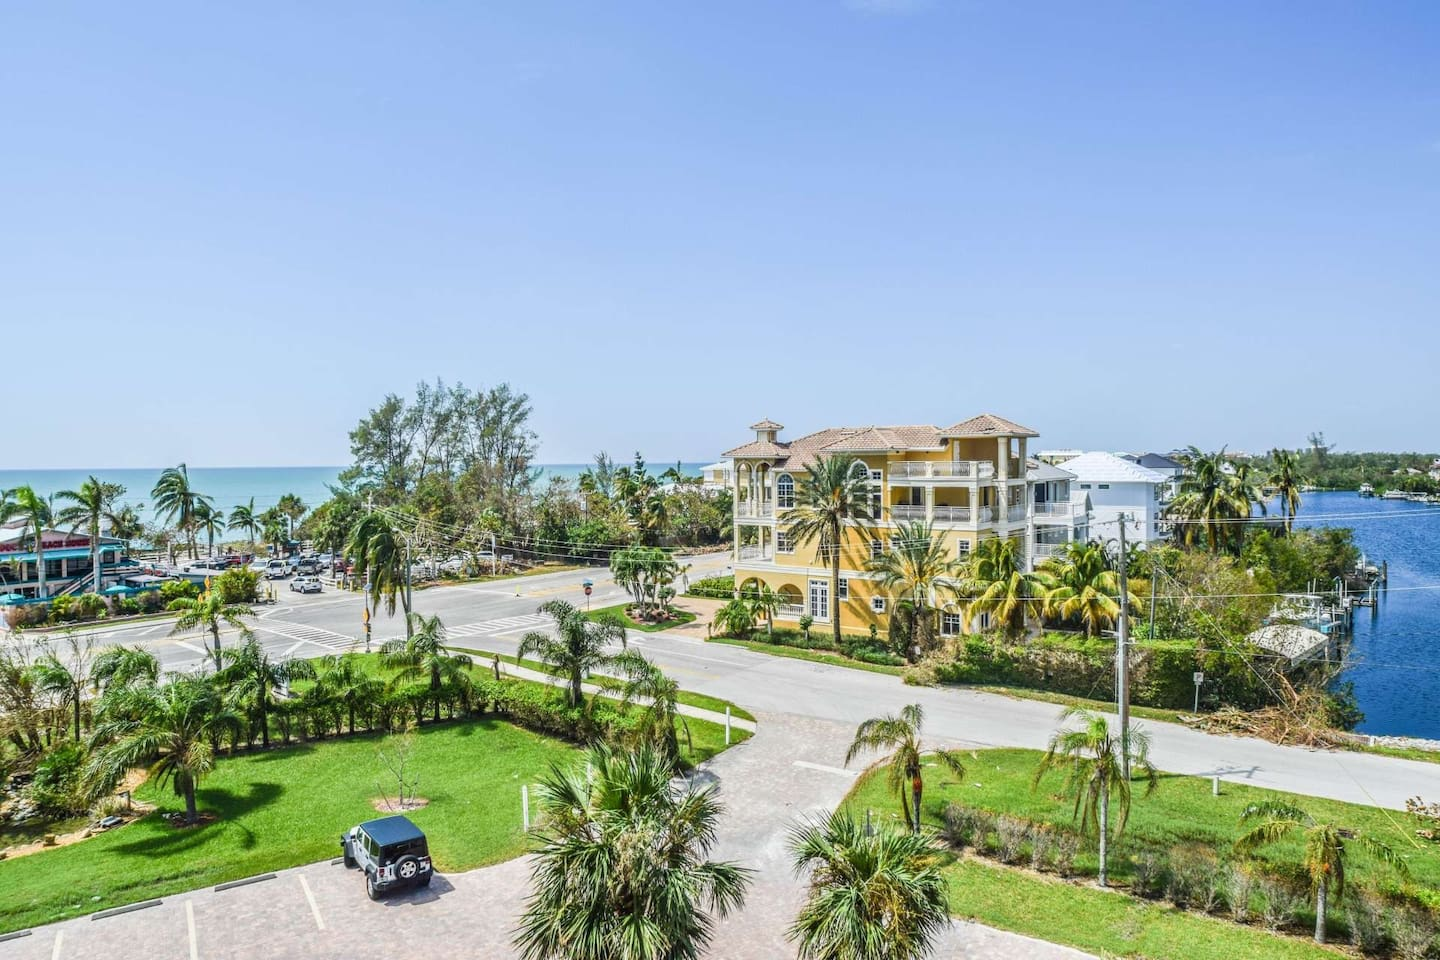 This view will be YOURS when you make this condo your vacation destination at Bonita Beach!